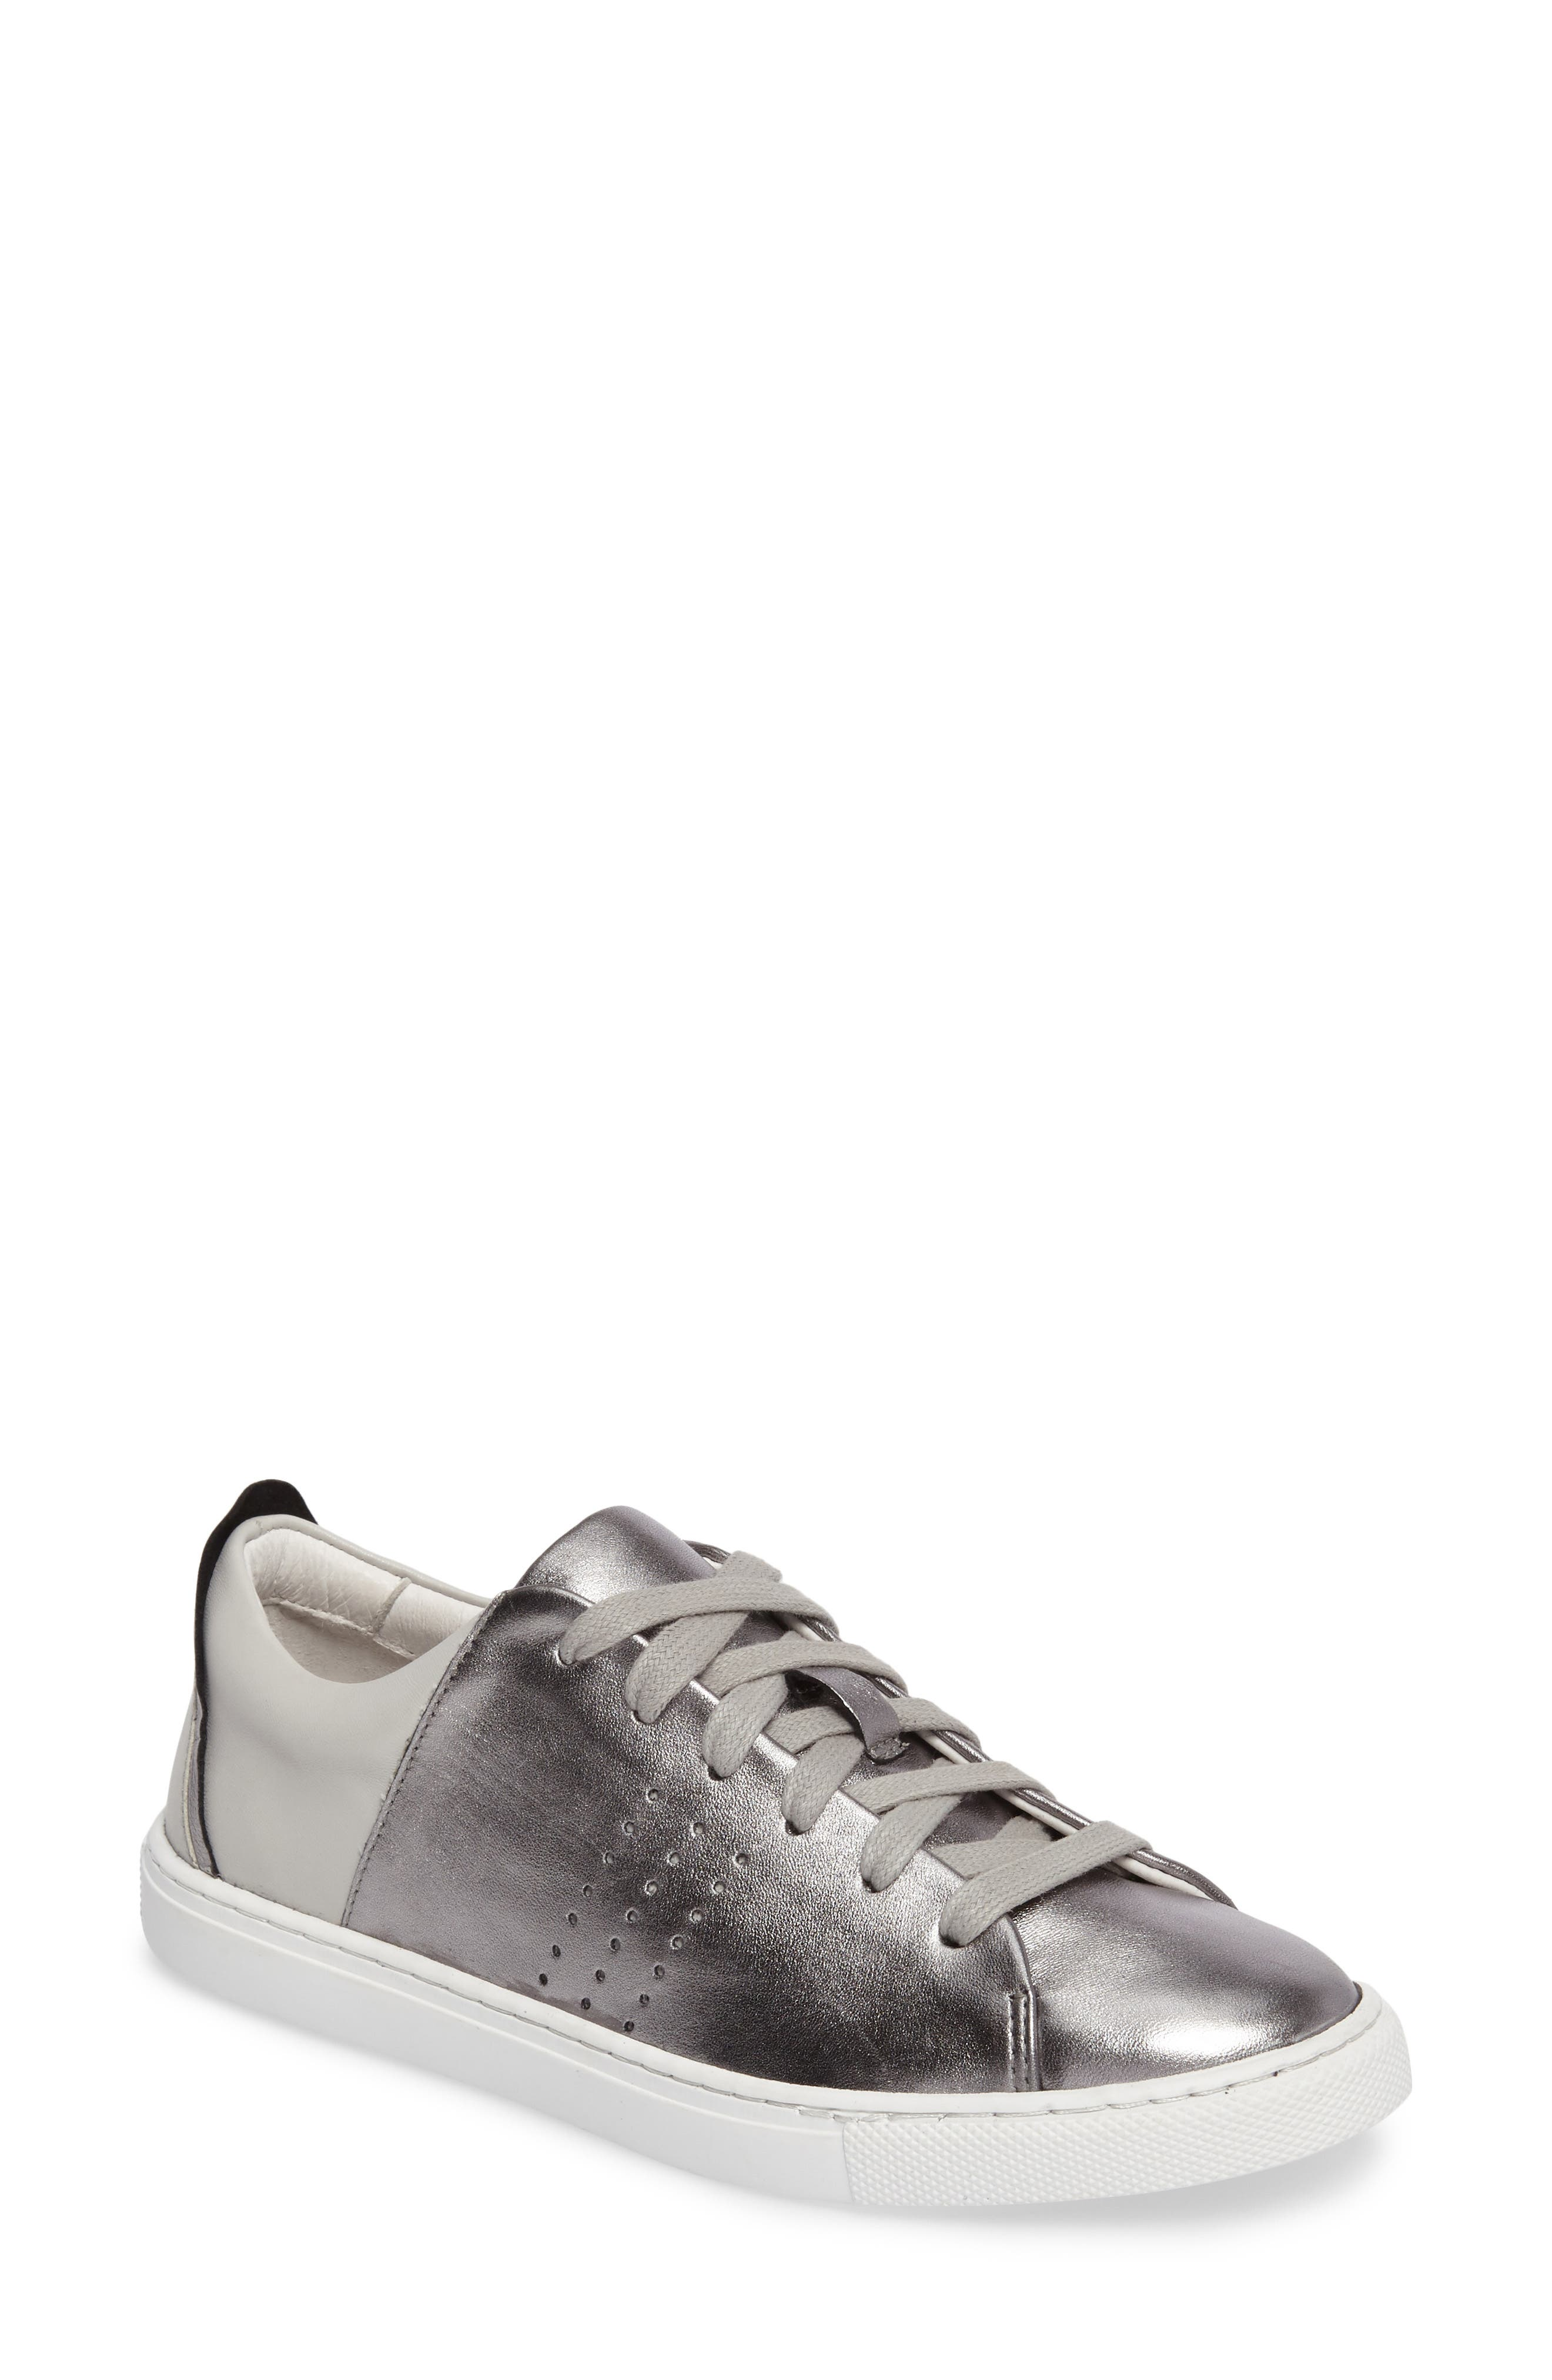 Splits Two-Tone Perforated Sneaker,                         Main,                         color, 045